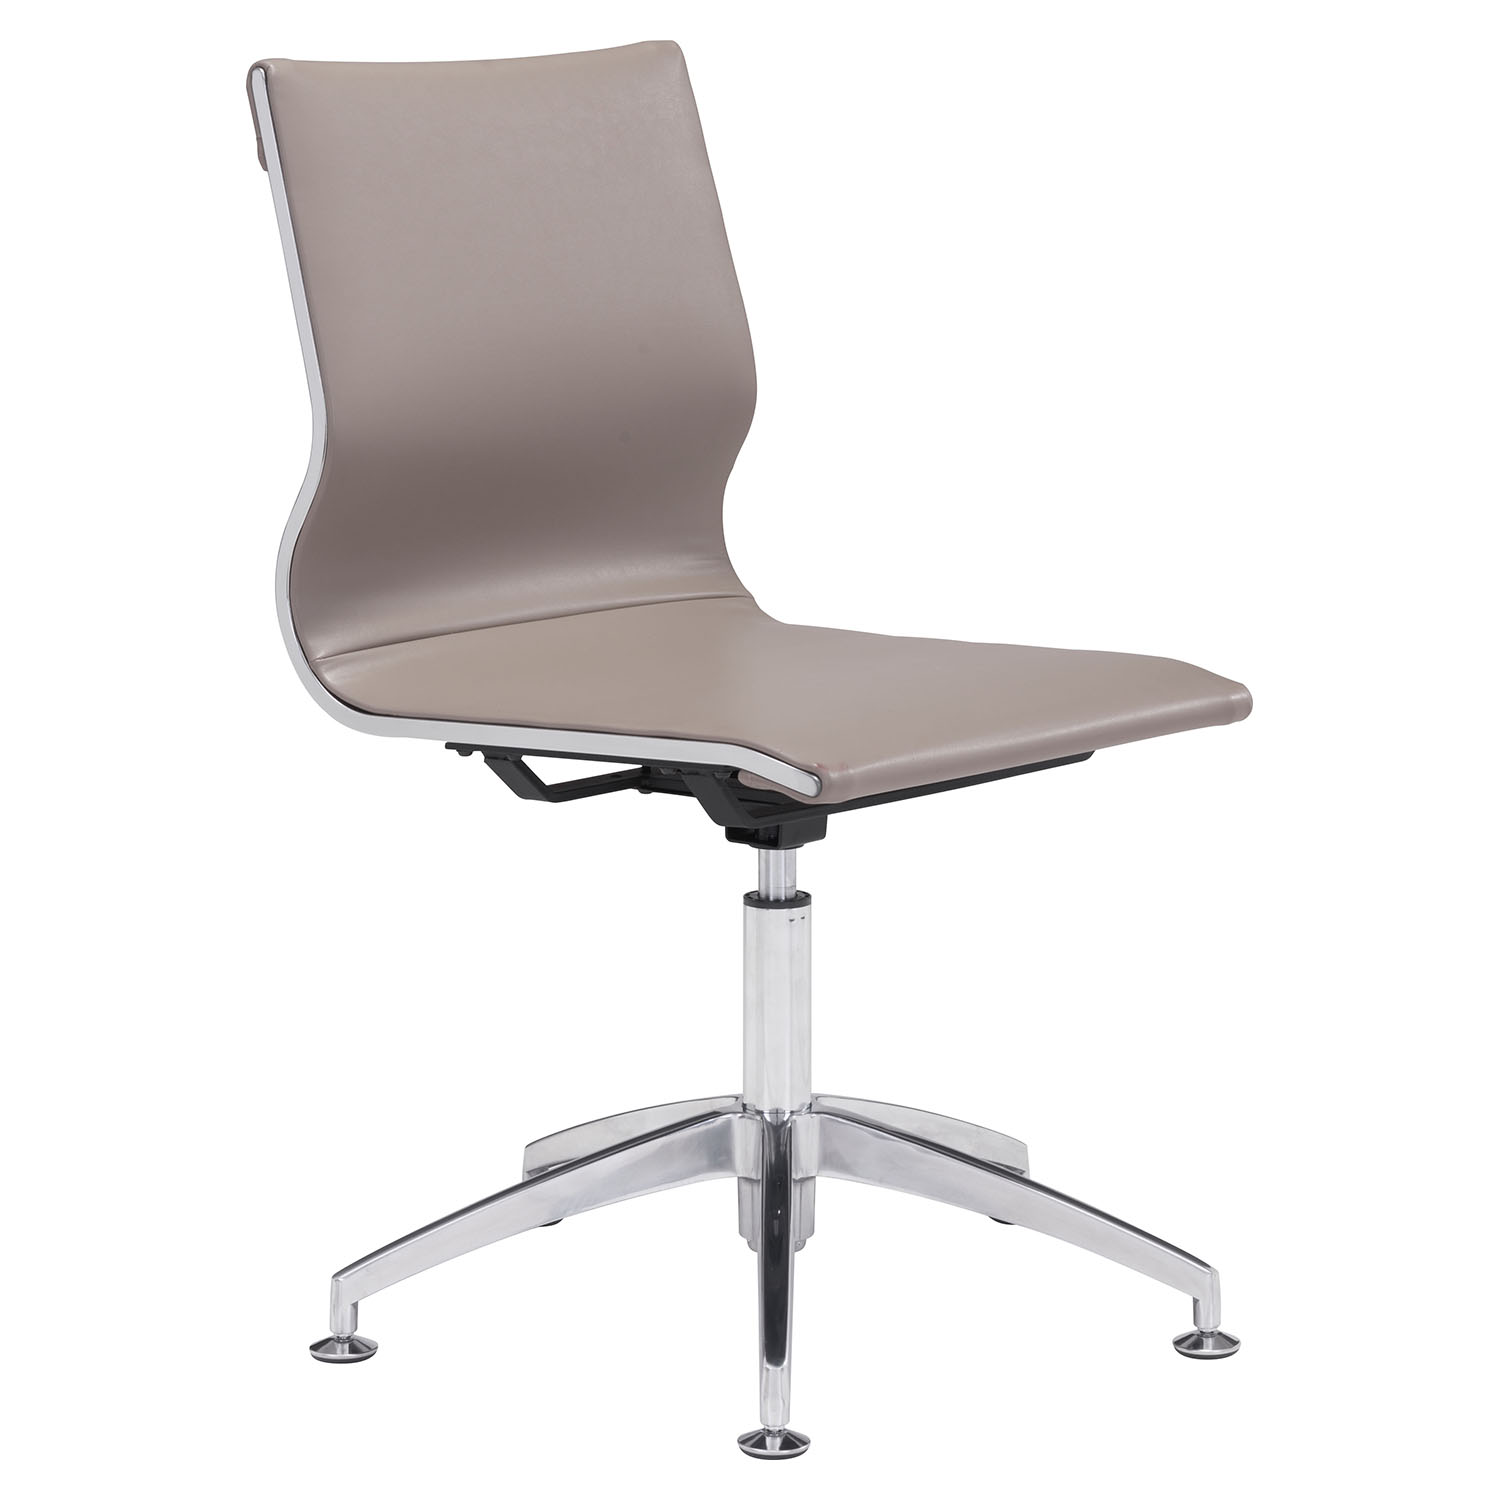 Glider Conference Chair - Taupe